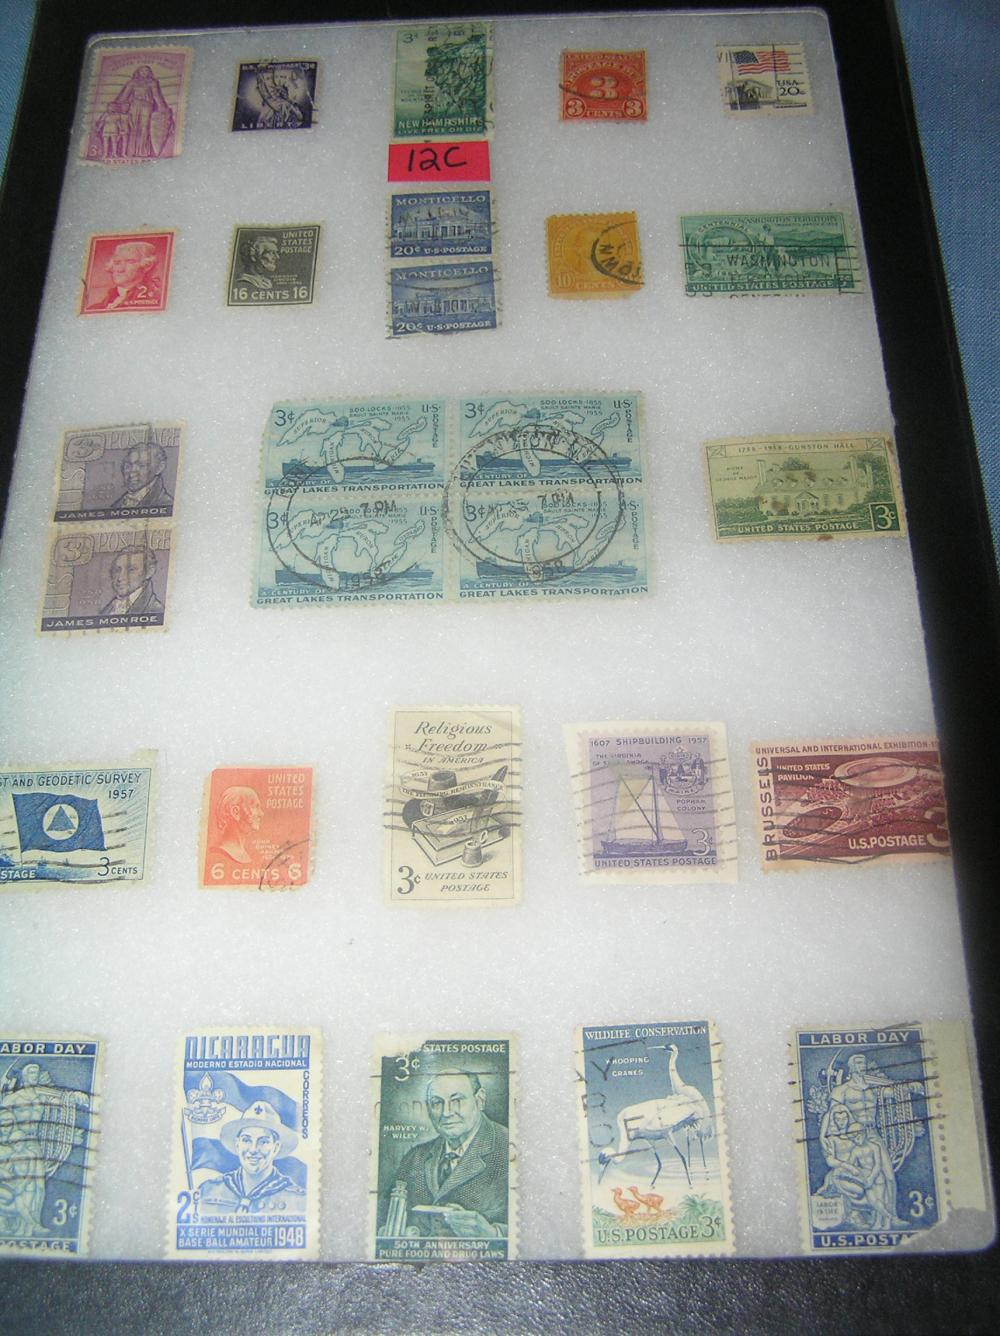 GROUP OF EARLY US POSTAGE STAMPS